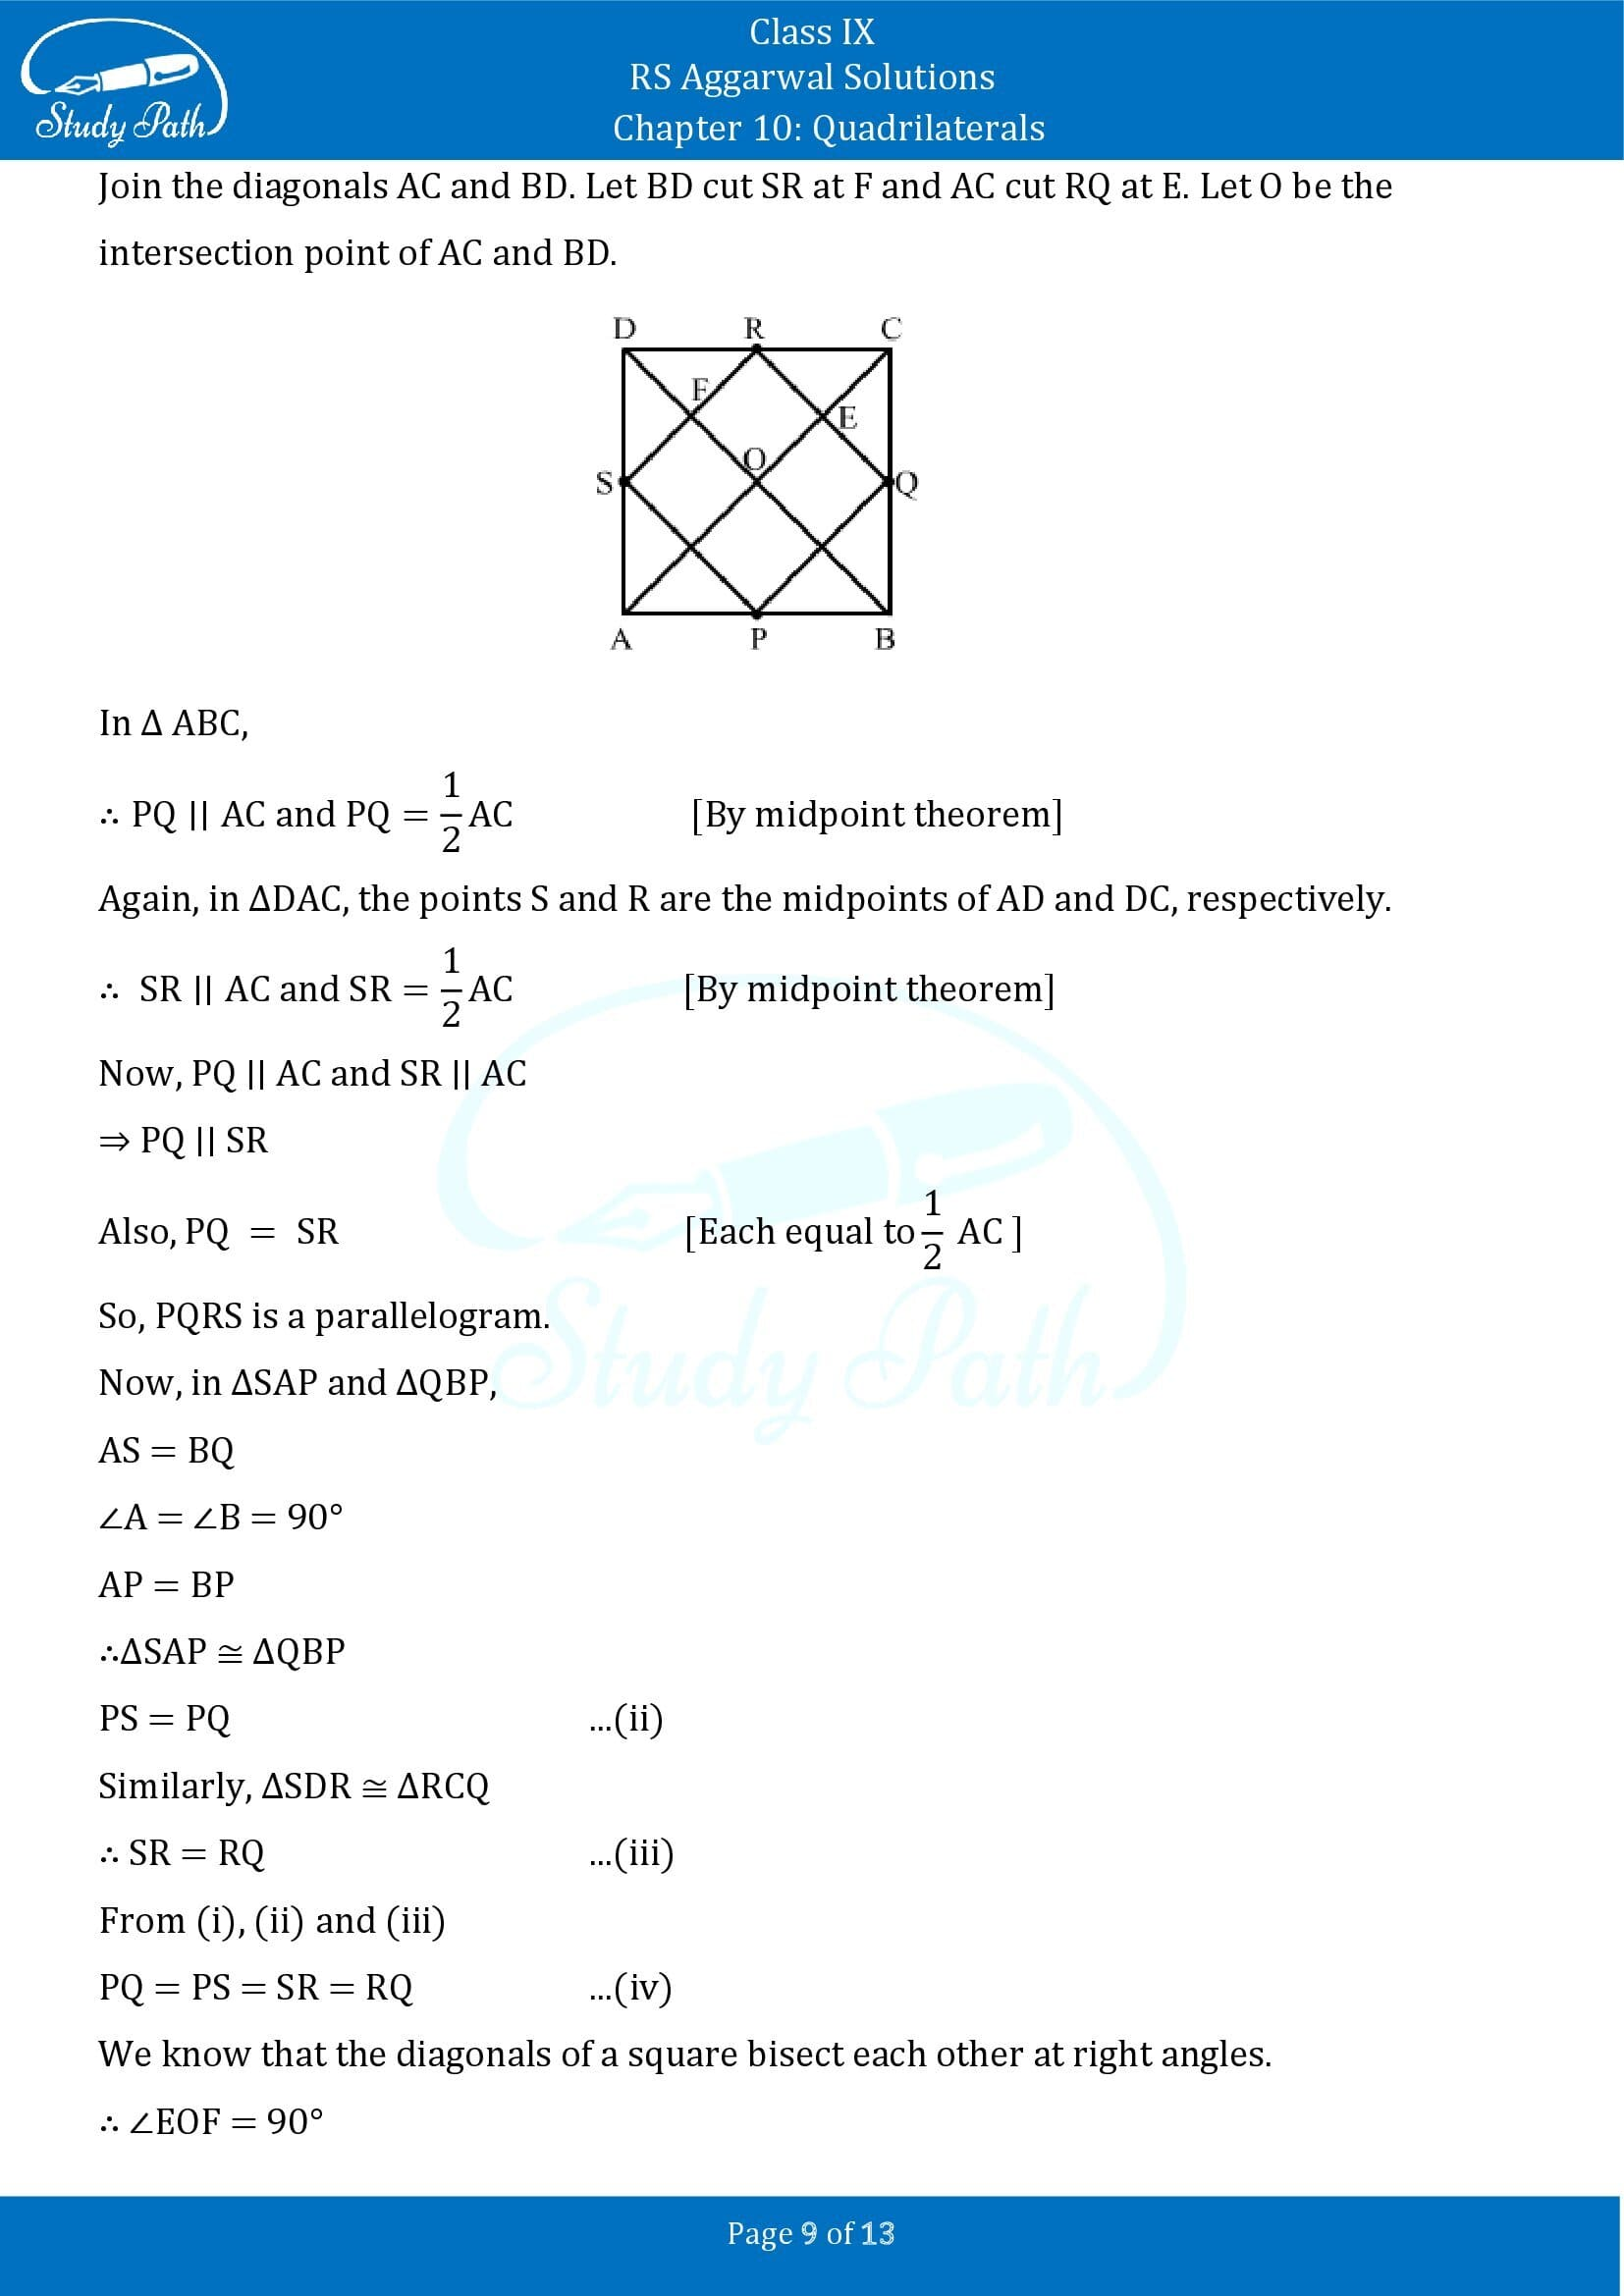 RS Aggarwal Solutions Class 9 Chapter 10 Quadrilaterals Exercise 10C 00009